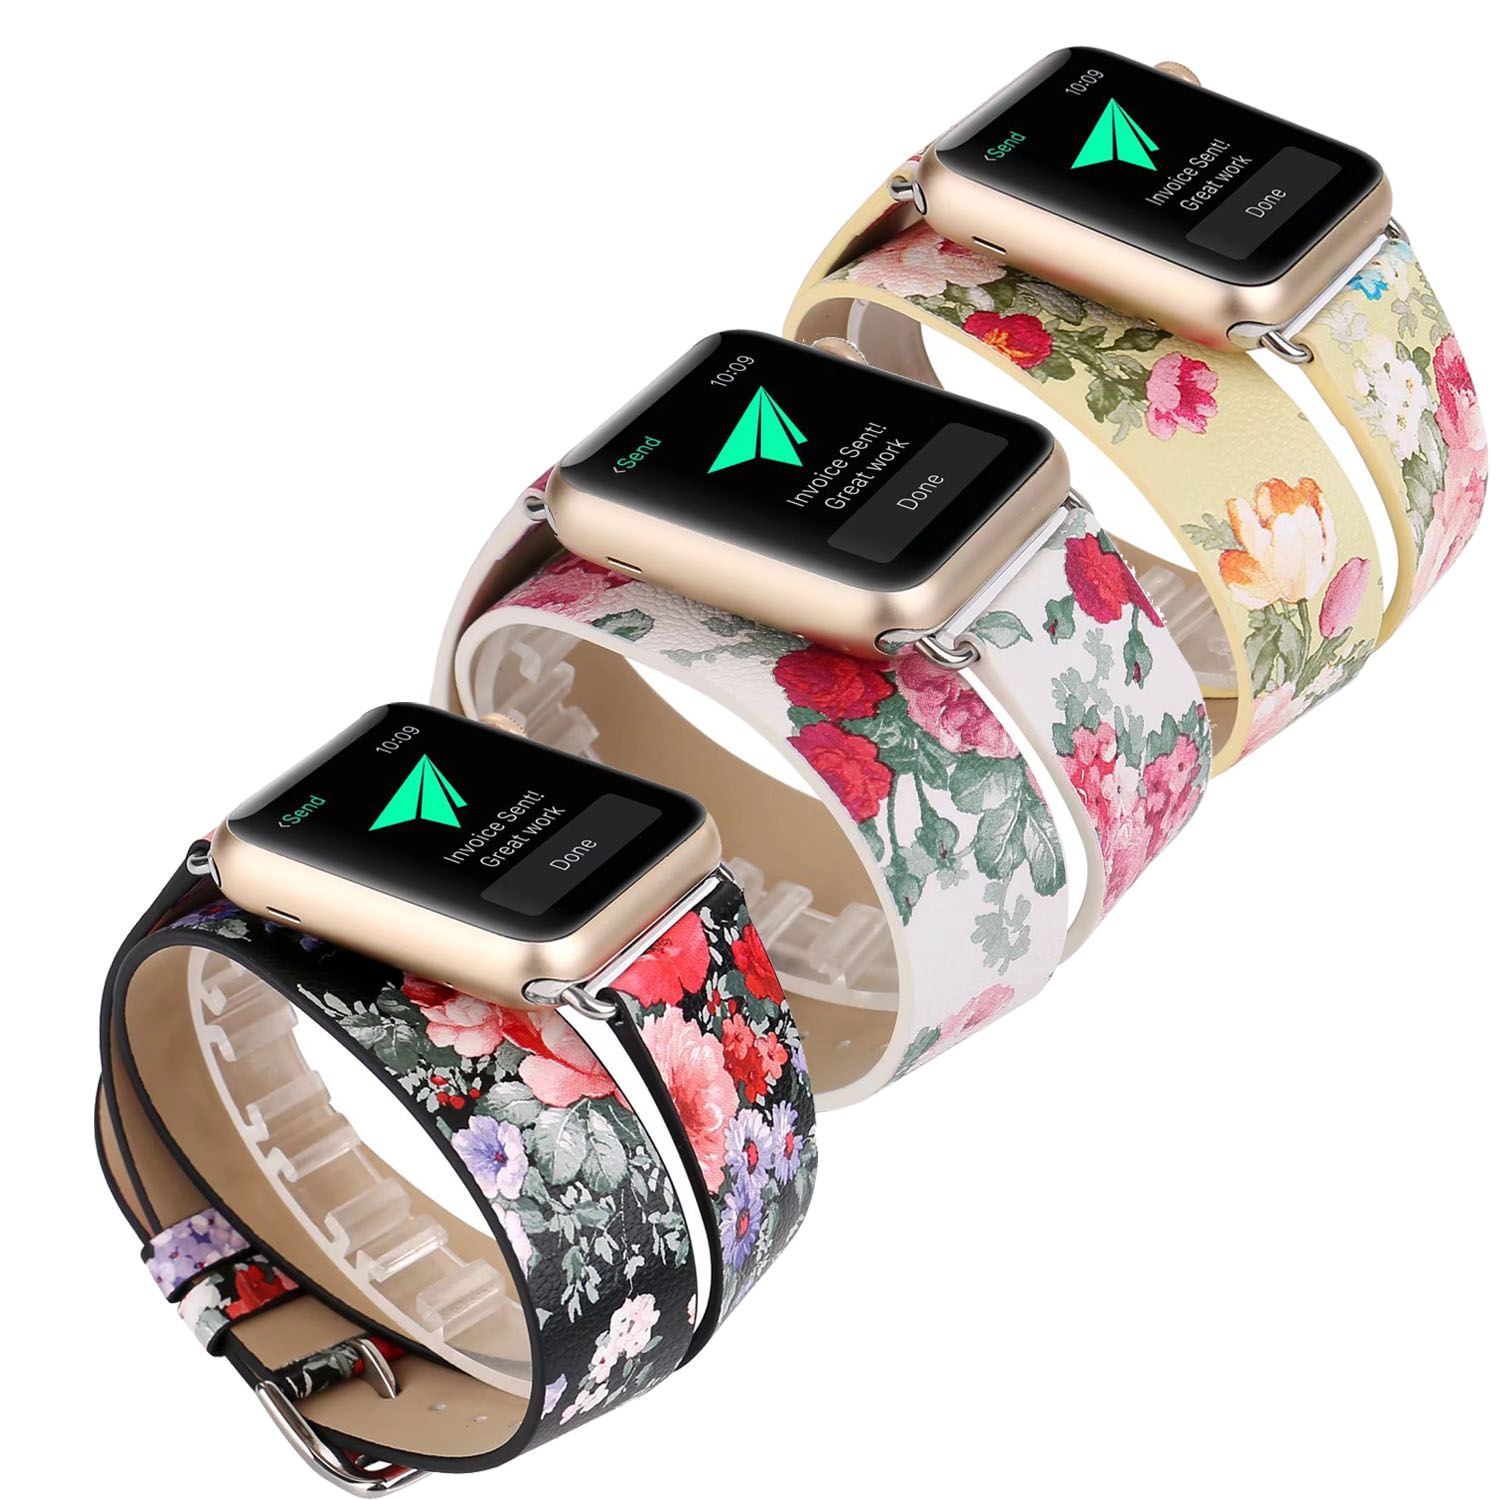 Extra Long Printing Flower Leather Watchband for Apple Watch Band Double Tour Bracelet 38mm 42mm for iWatch Series 1 2 3 Strap fohuas extra long genuine leather band double tour bracelet leather strap watchband for apple watch series 2 38mm amd 42mm woman